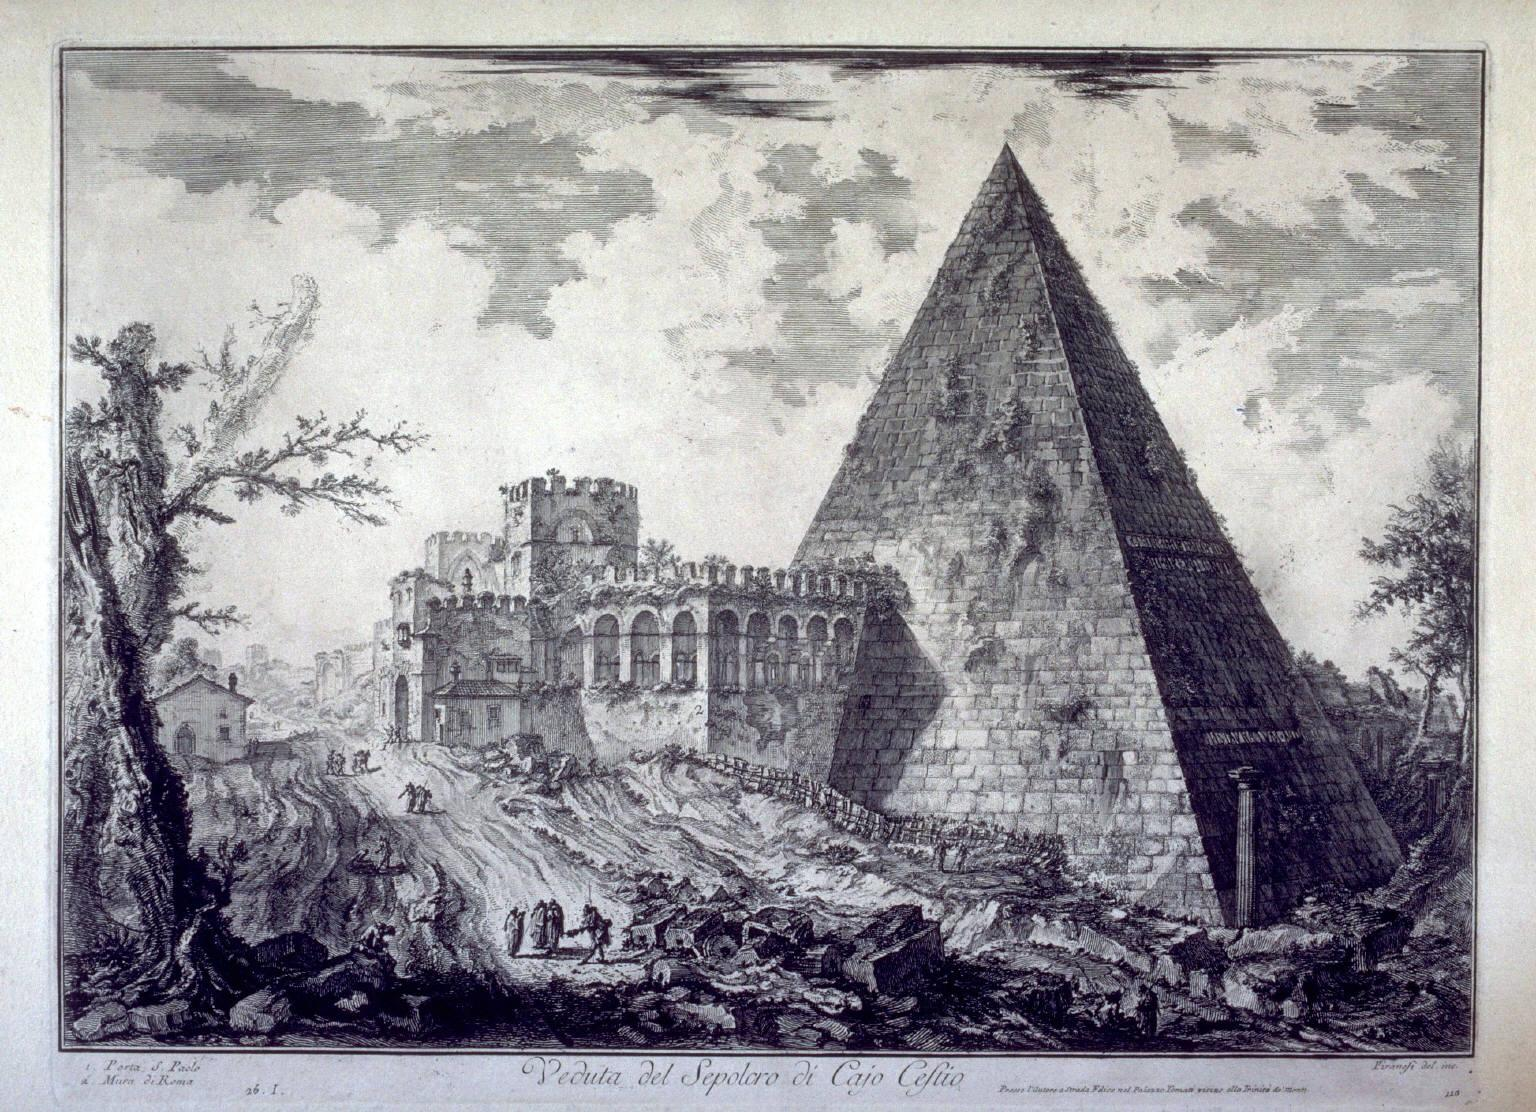 Giovanni-Battista-Piranesi-Views-of-Rome-Pyramid-of-Caius-Cestius-1755-painting-artwork-print